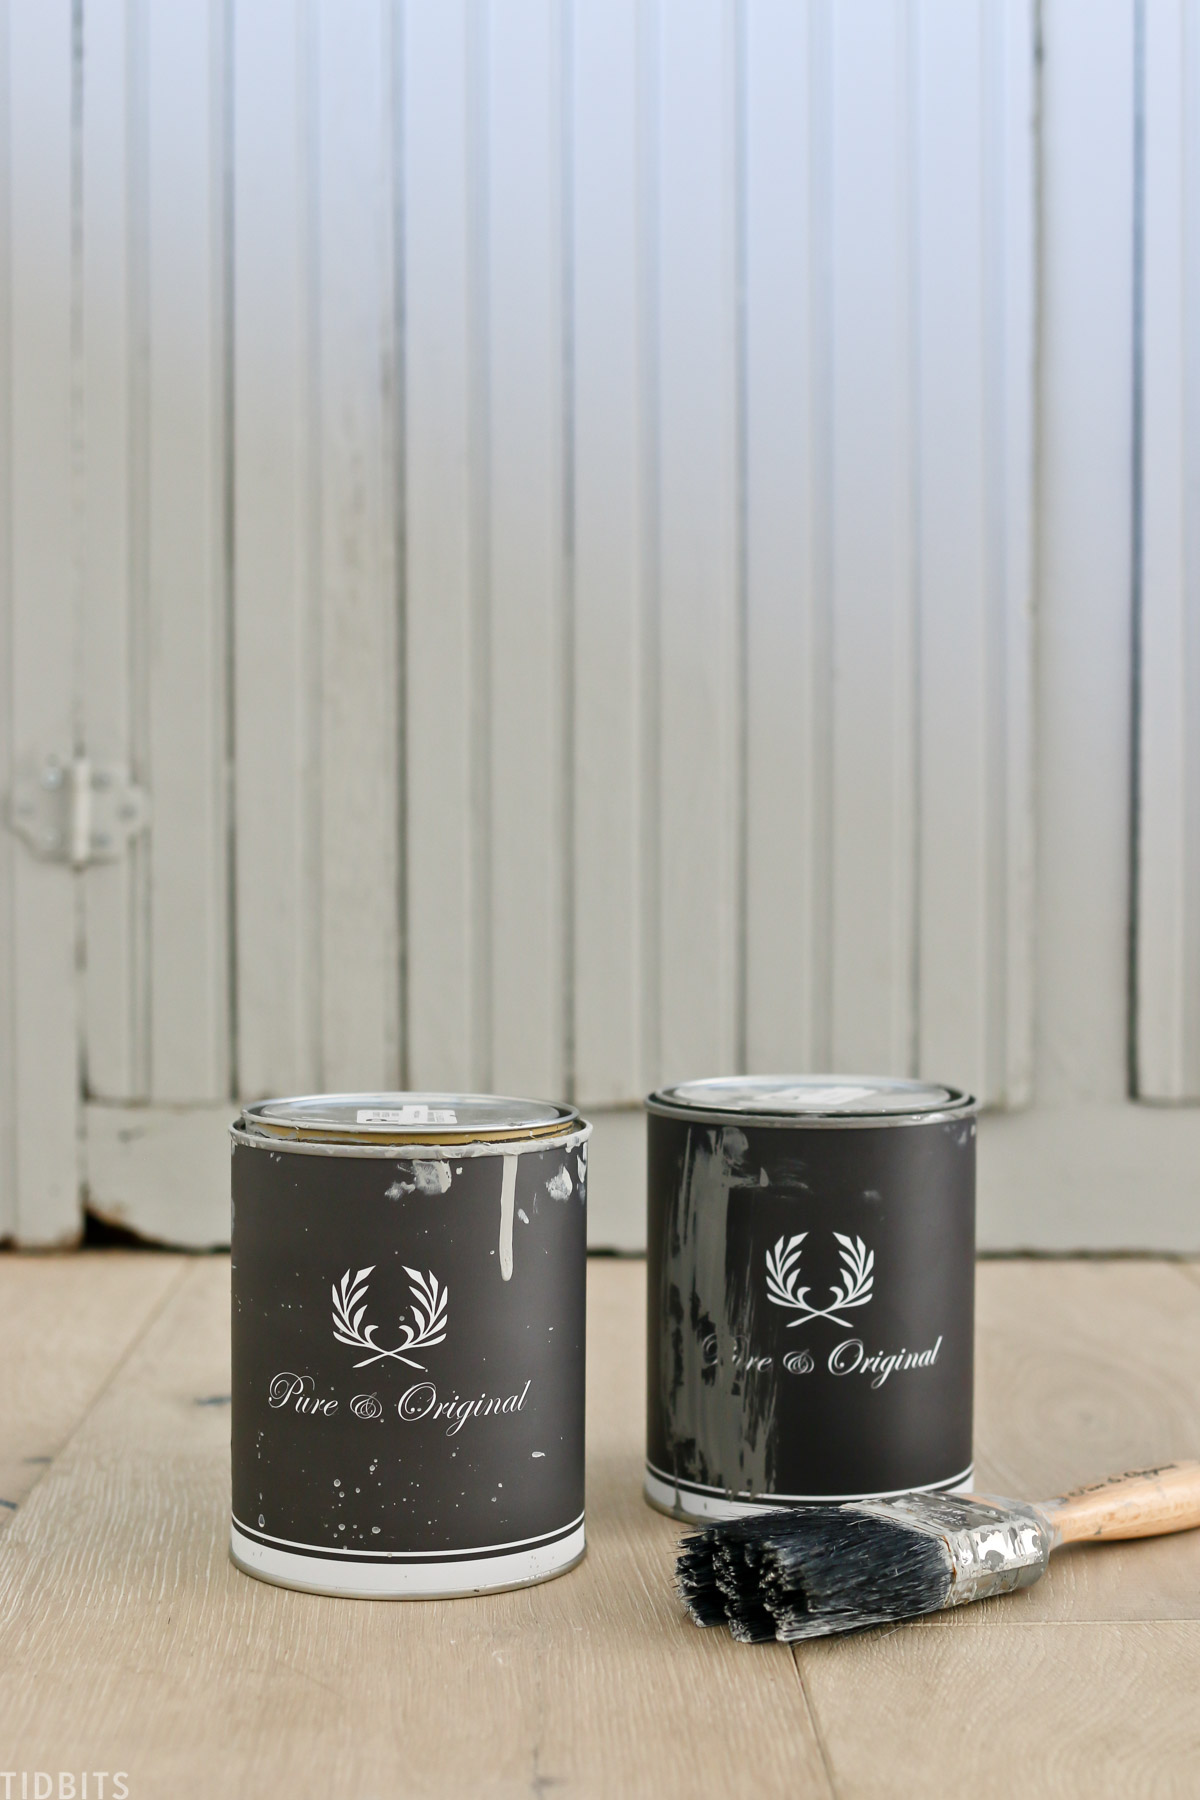 Pure and original paint cans